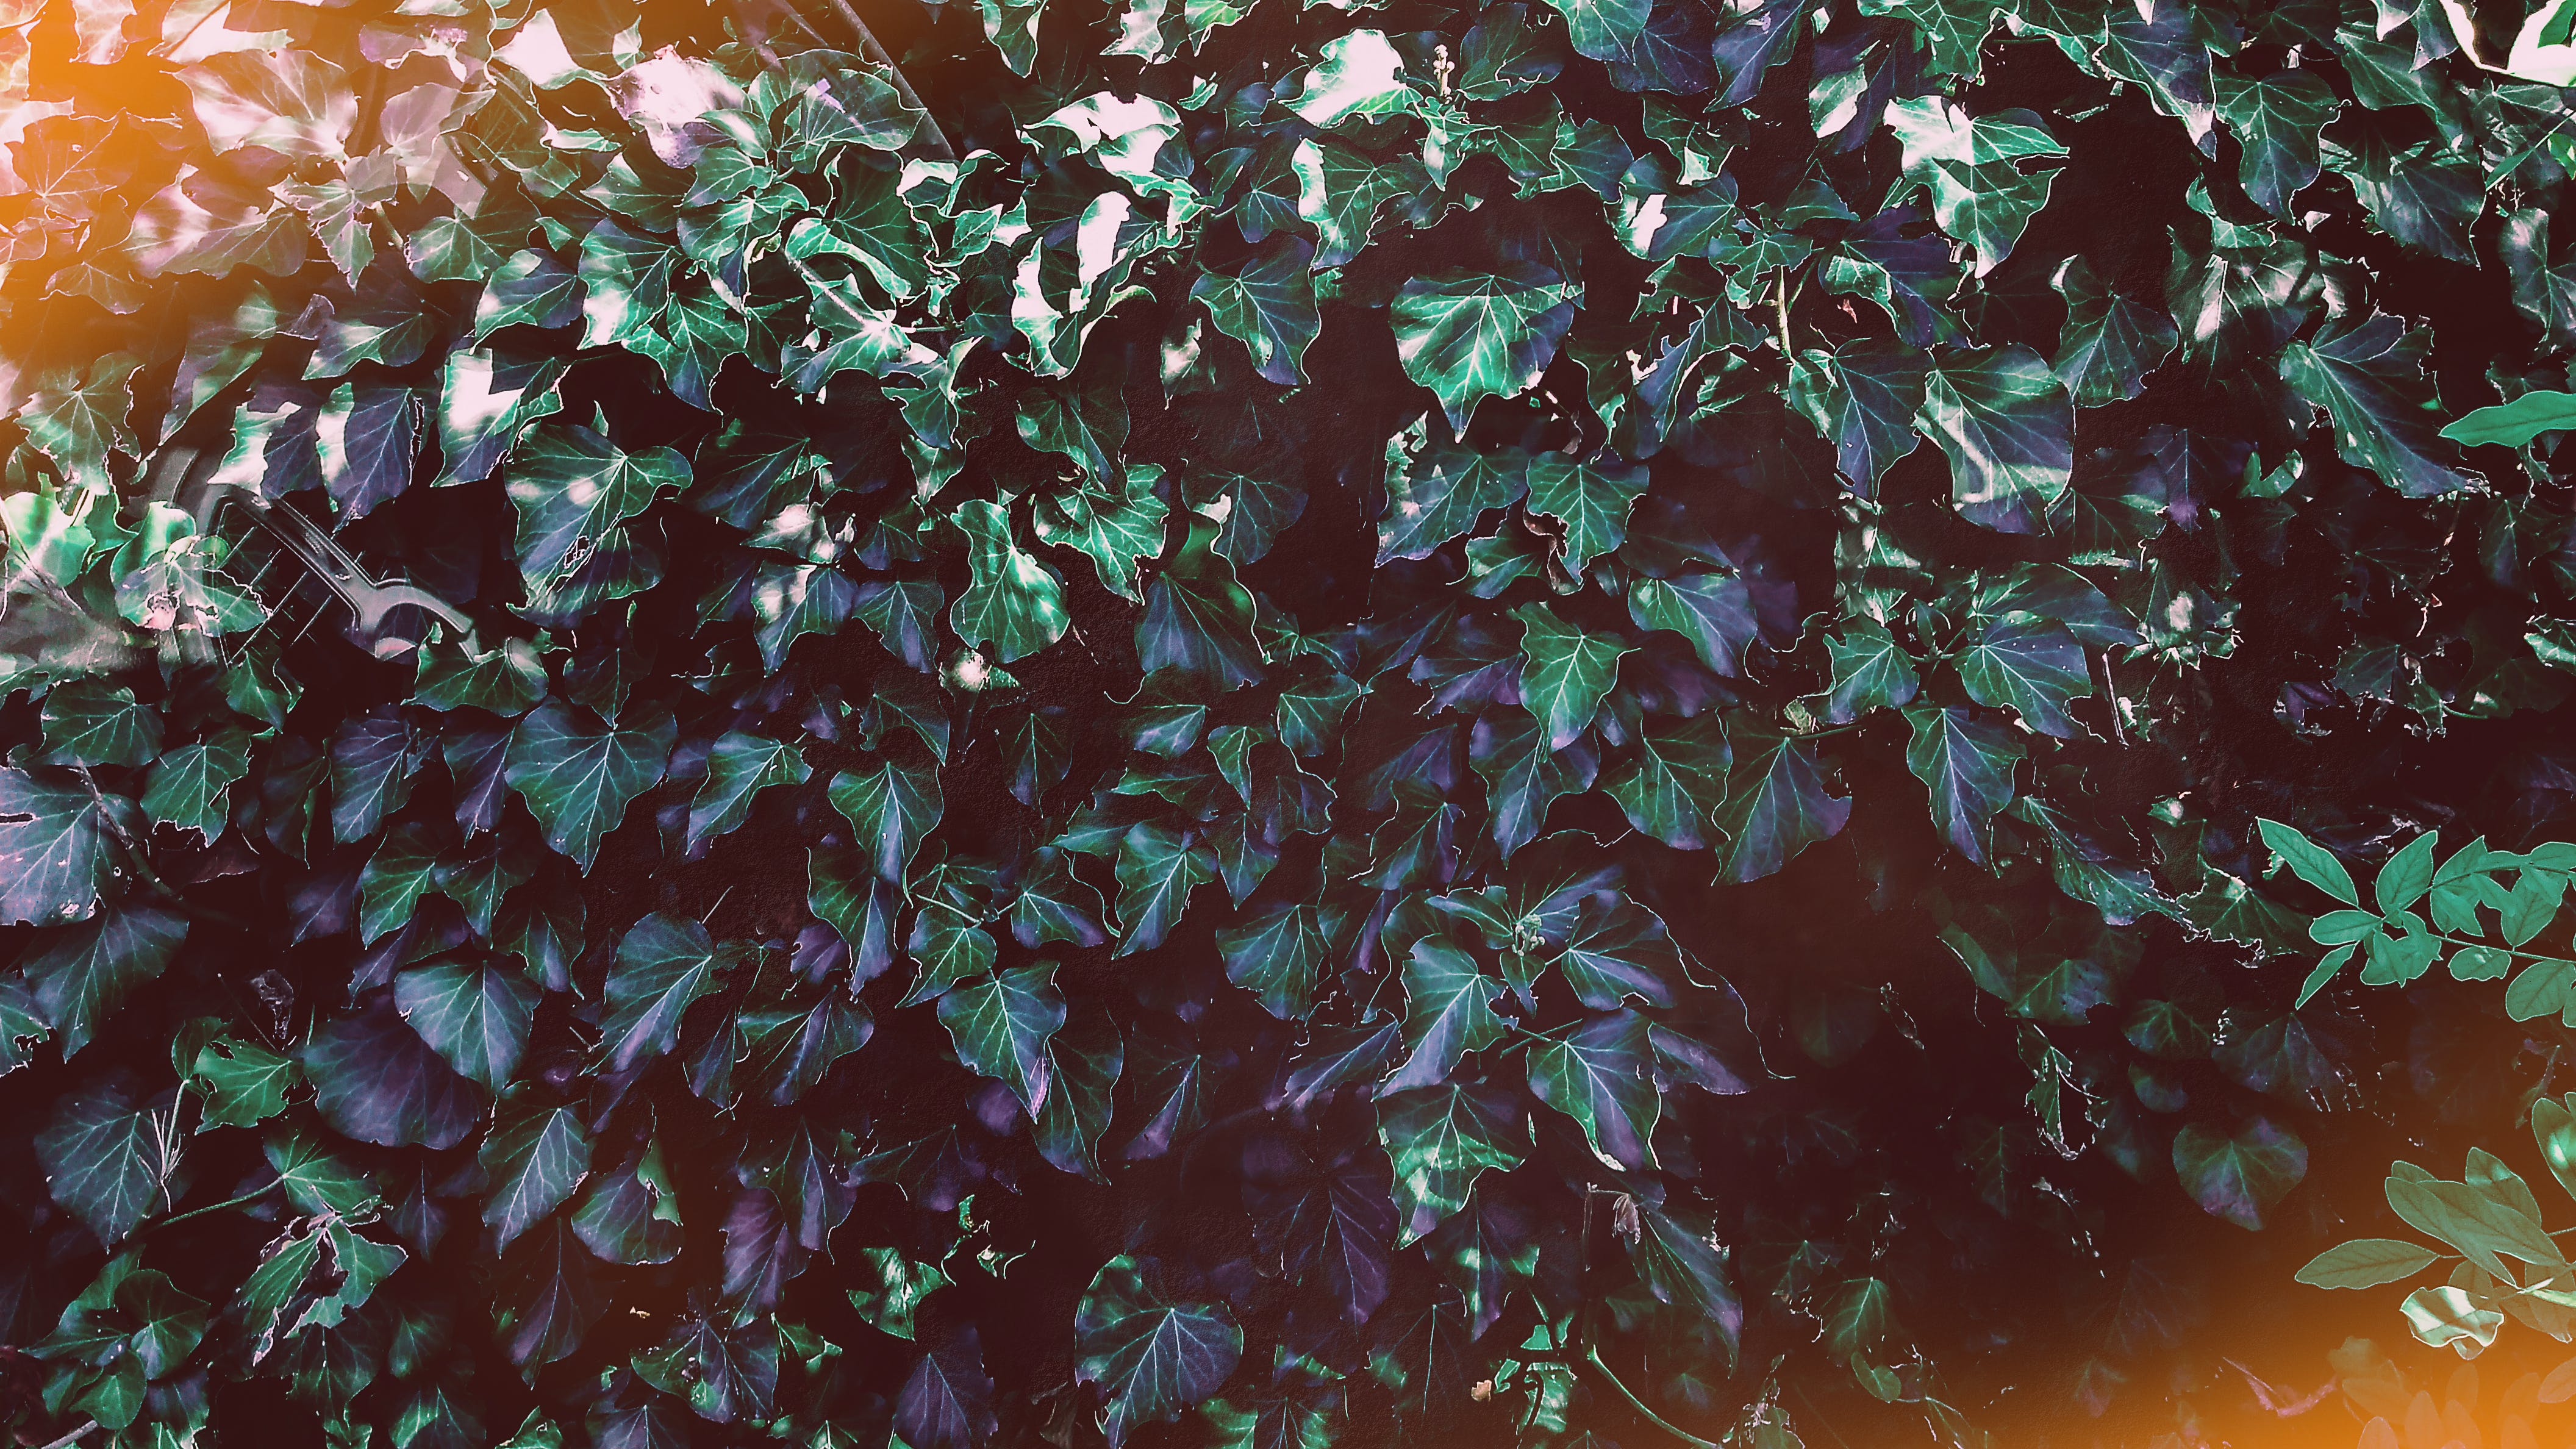 Free stock photo of dark green plants, green leaves, nature